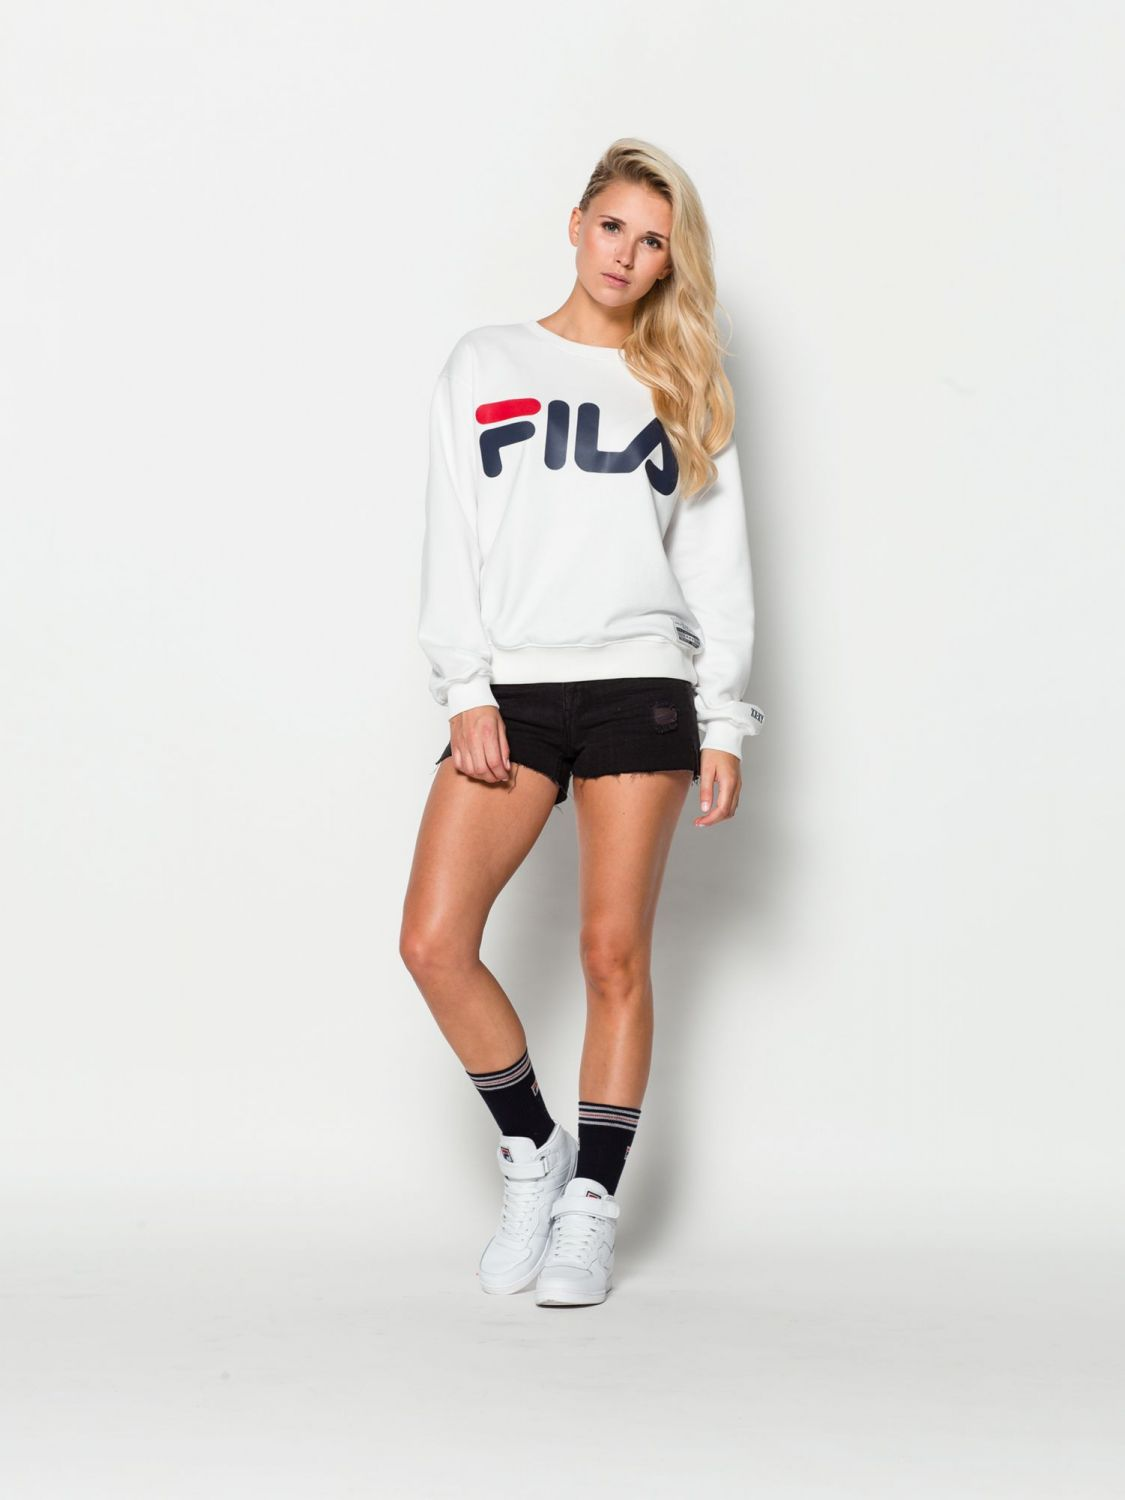 fila kriss sweater 00014201375345 white fila germany. Black Bedroom Furniture Sets. Home Design Ideas